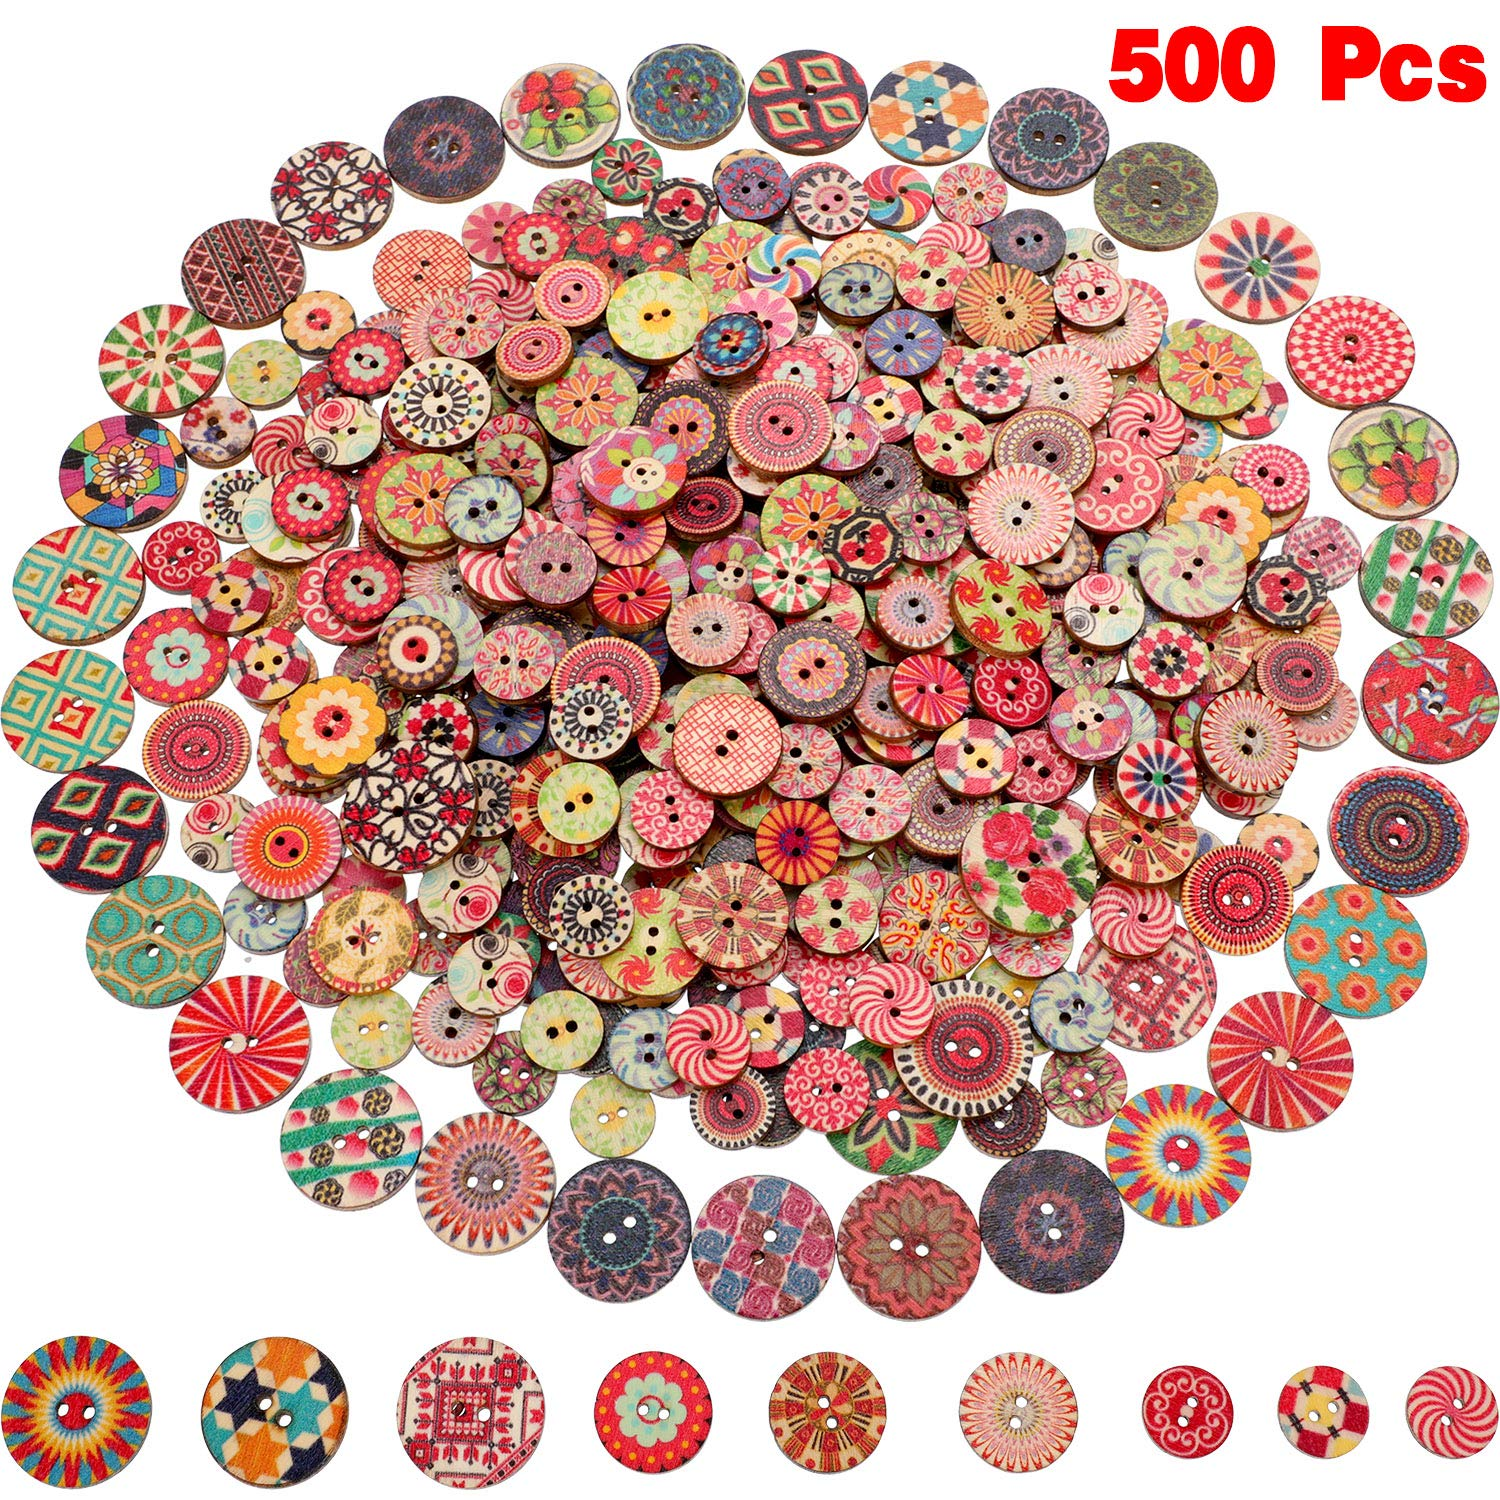 500 Pieces Flower Wood Buttons 2 Holes Round Buttons Vintage Sewing Buttons for Sewing DIY Craft Decorations by WILLBOND